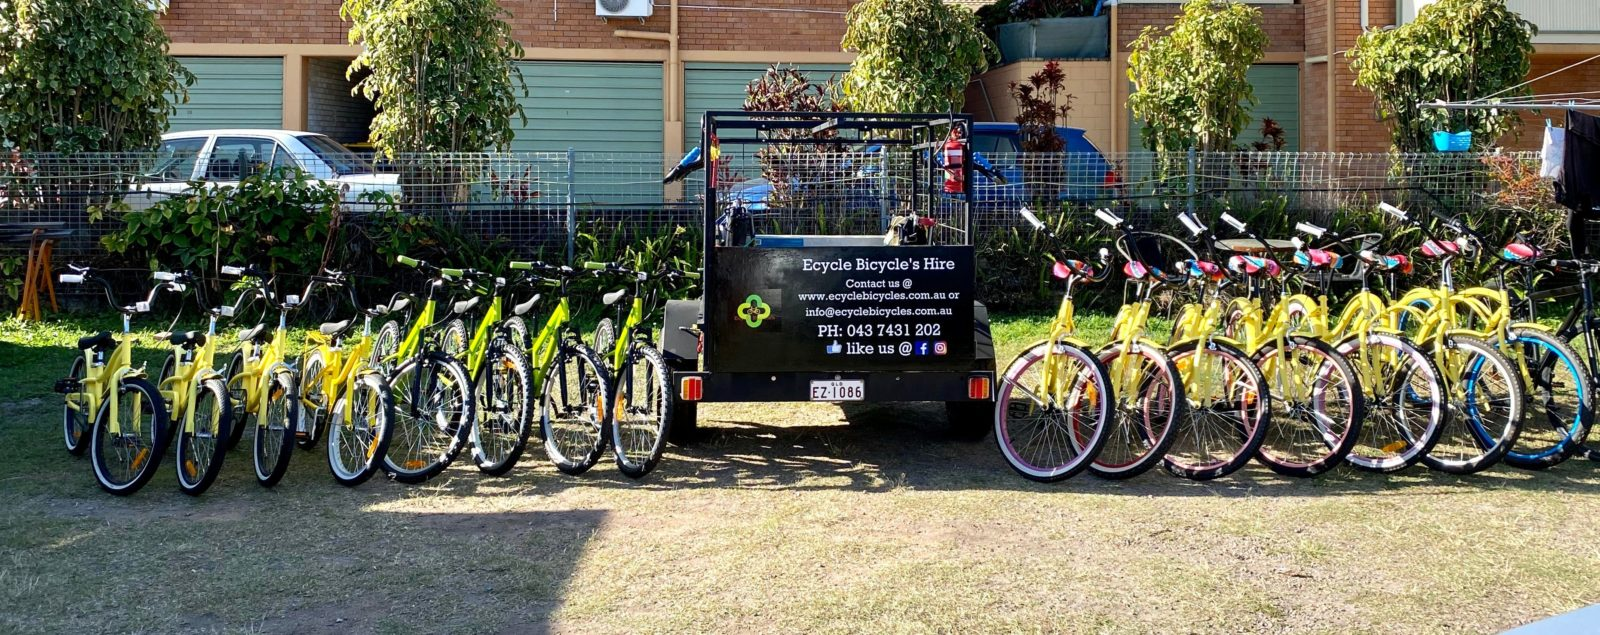 Welcome to Ecycle Bicycles Hire